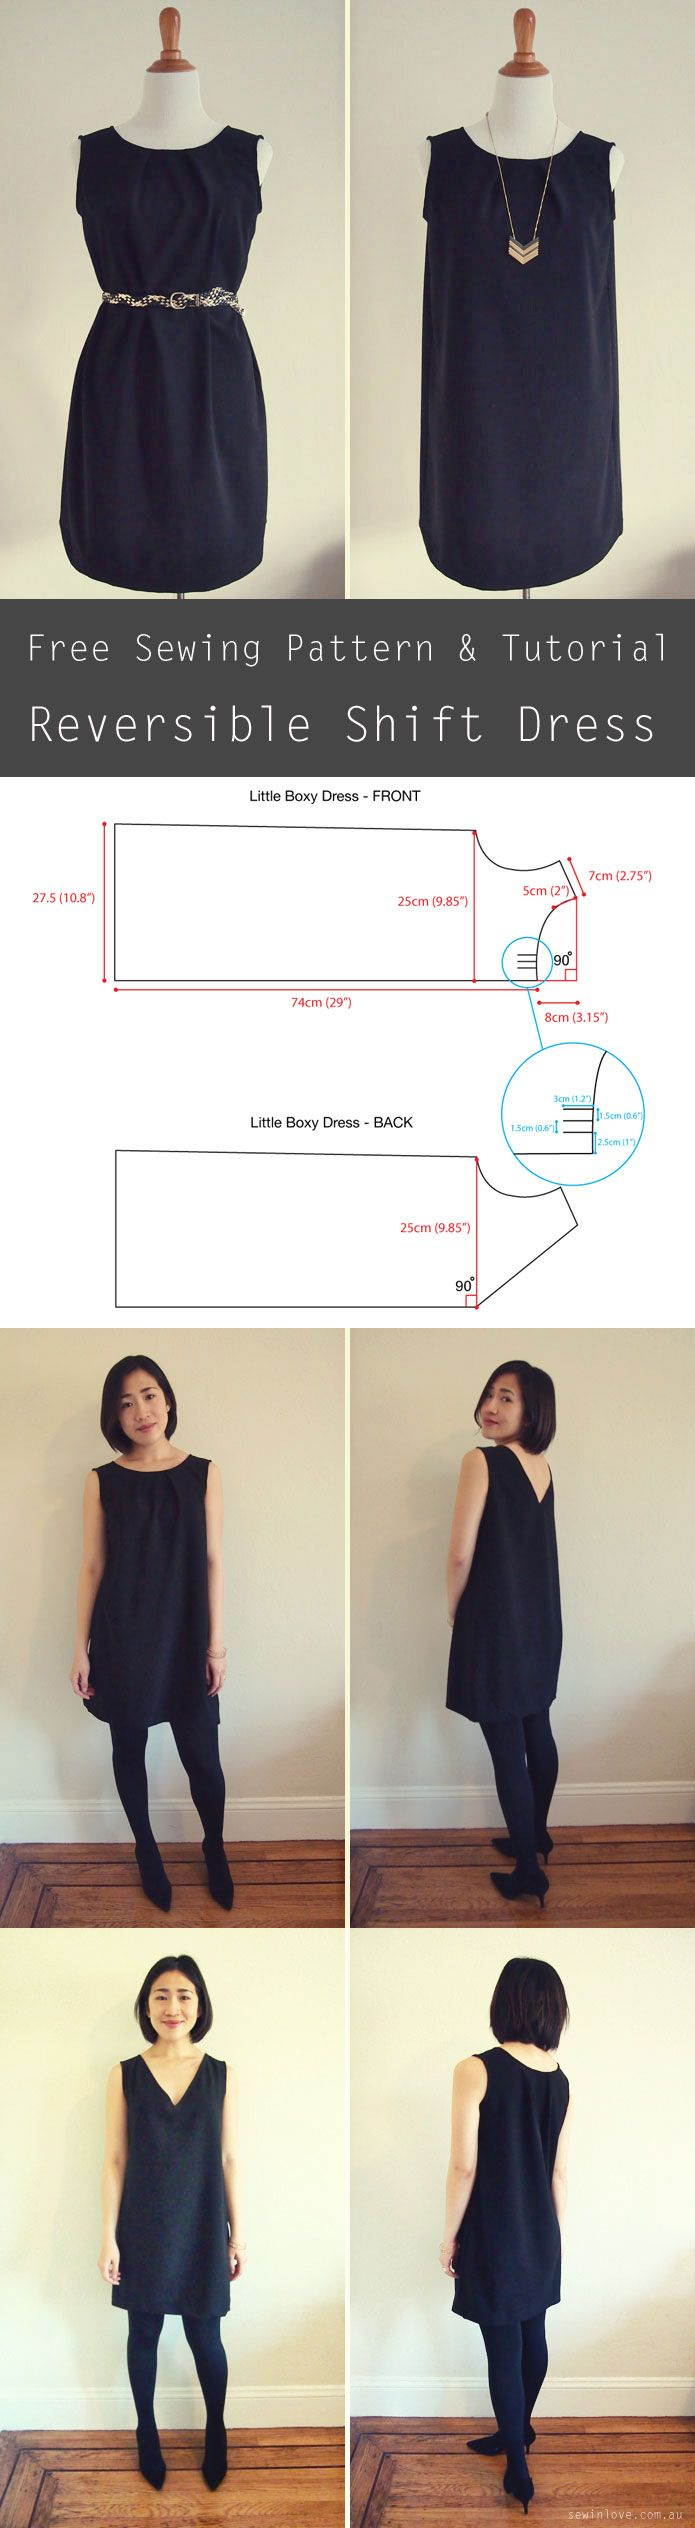 Free Sewing Pattern: Reversible V-neck and Crewneck Shift Dress